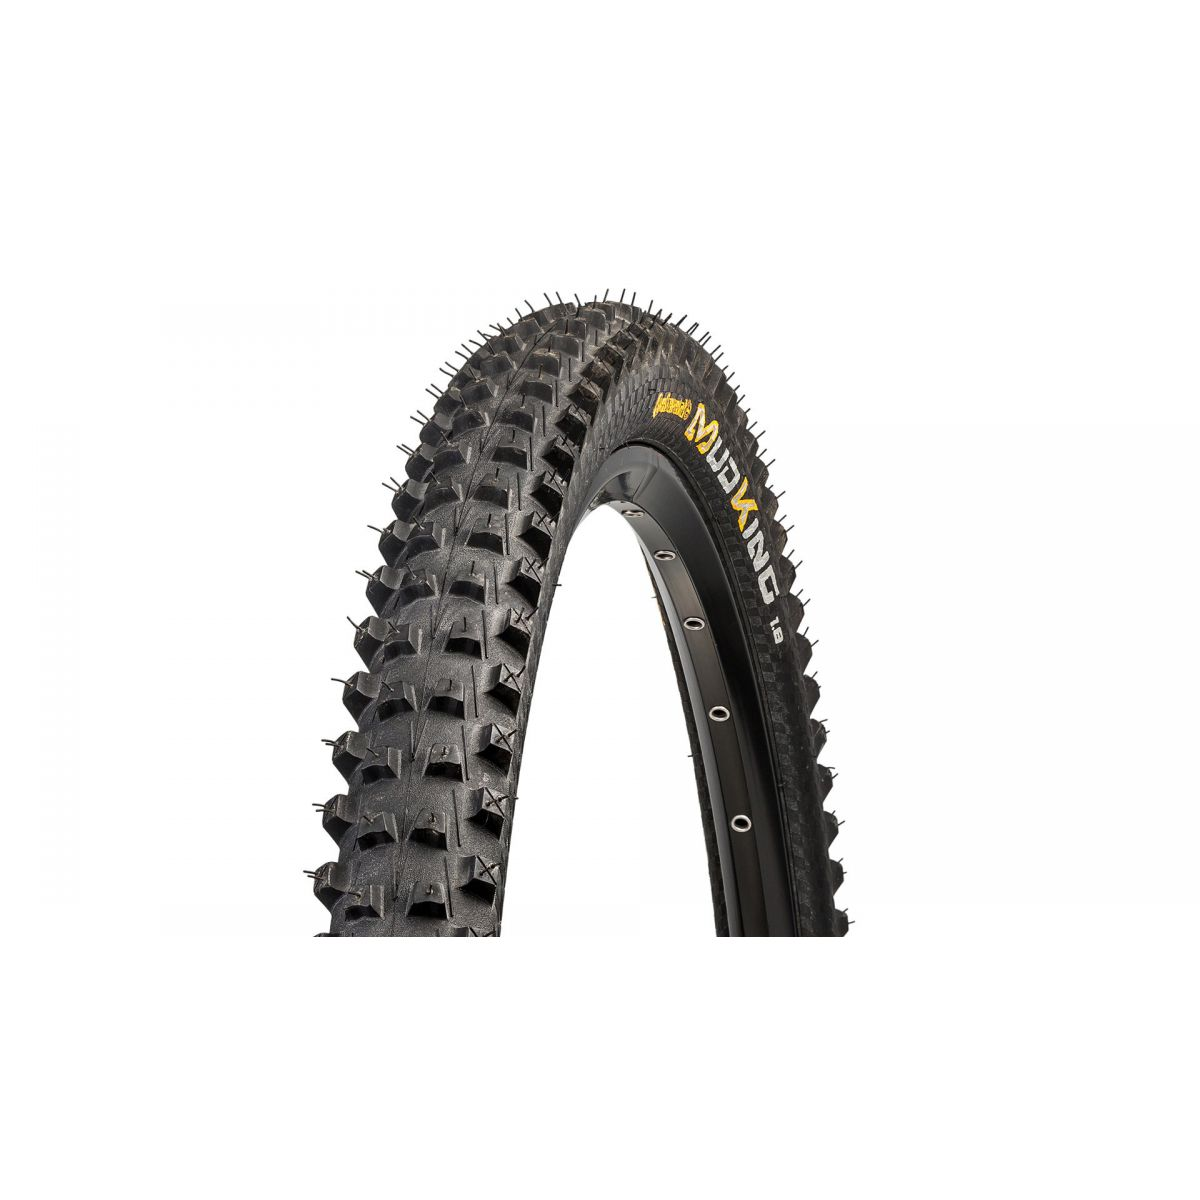 Pneu Continental Mud King 29x1.8 Protection